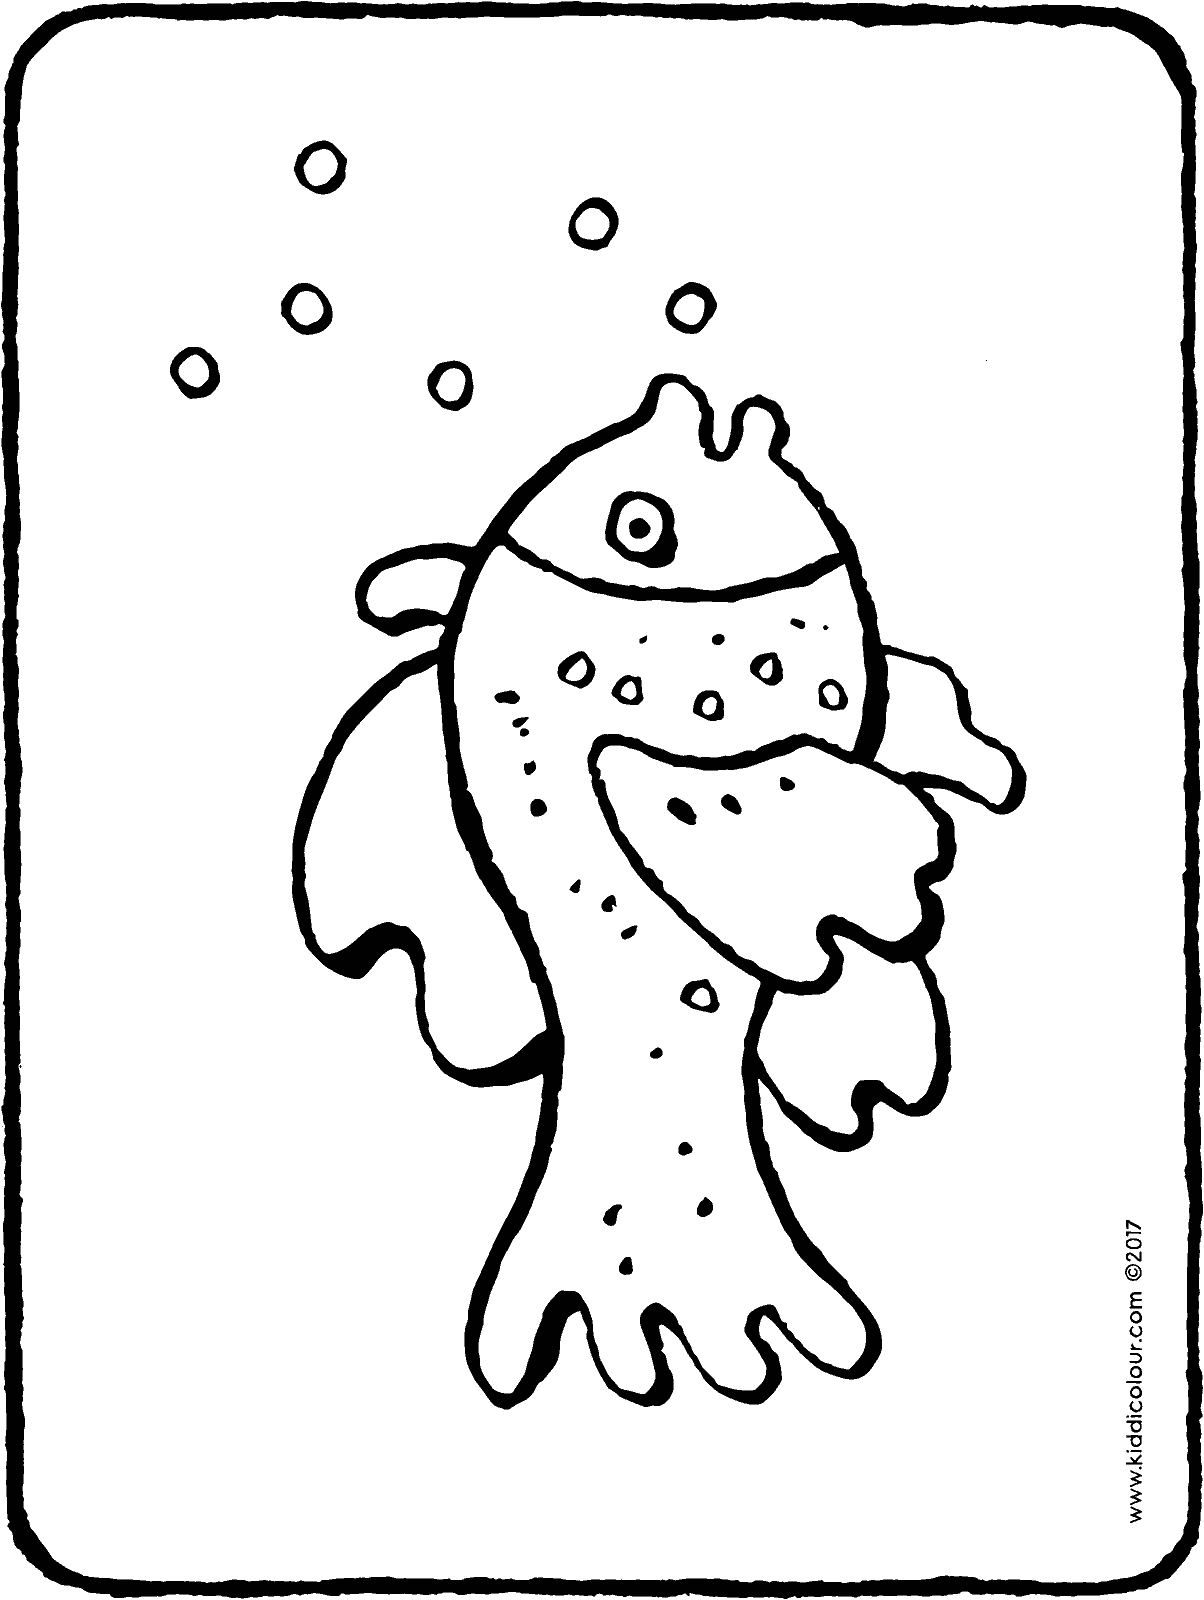 fish colouring page drawing picture 01H